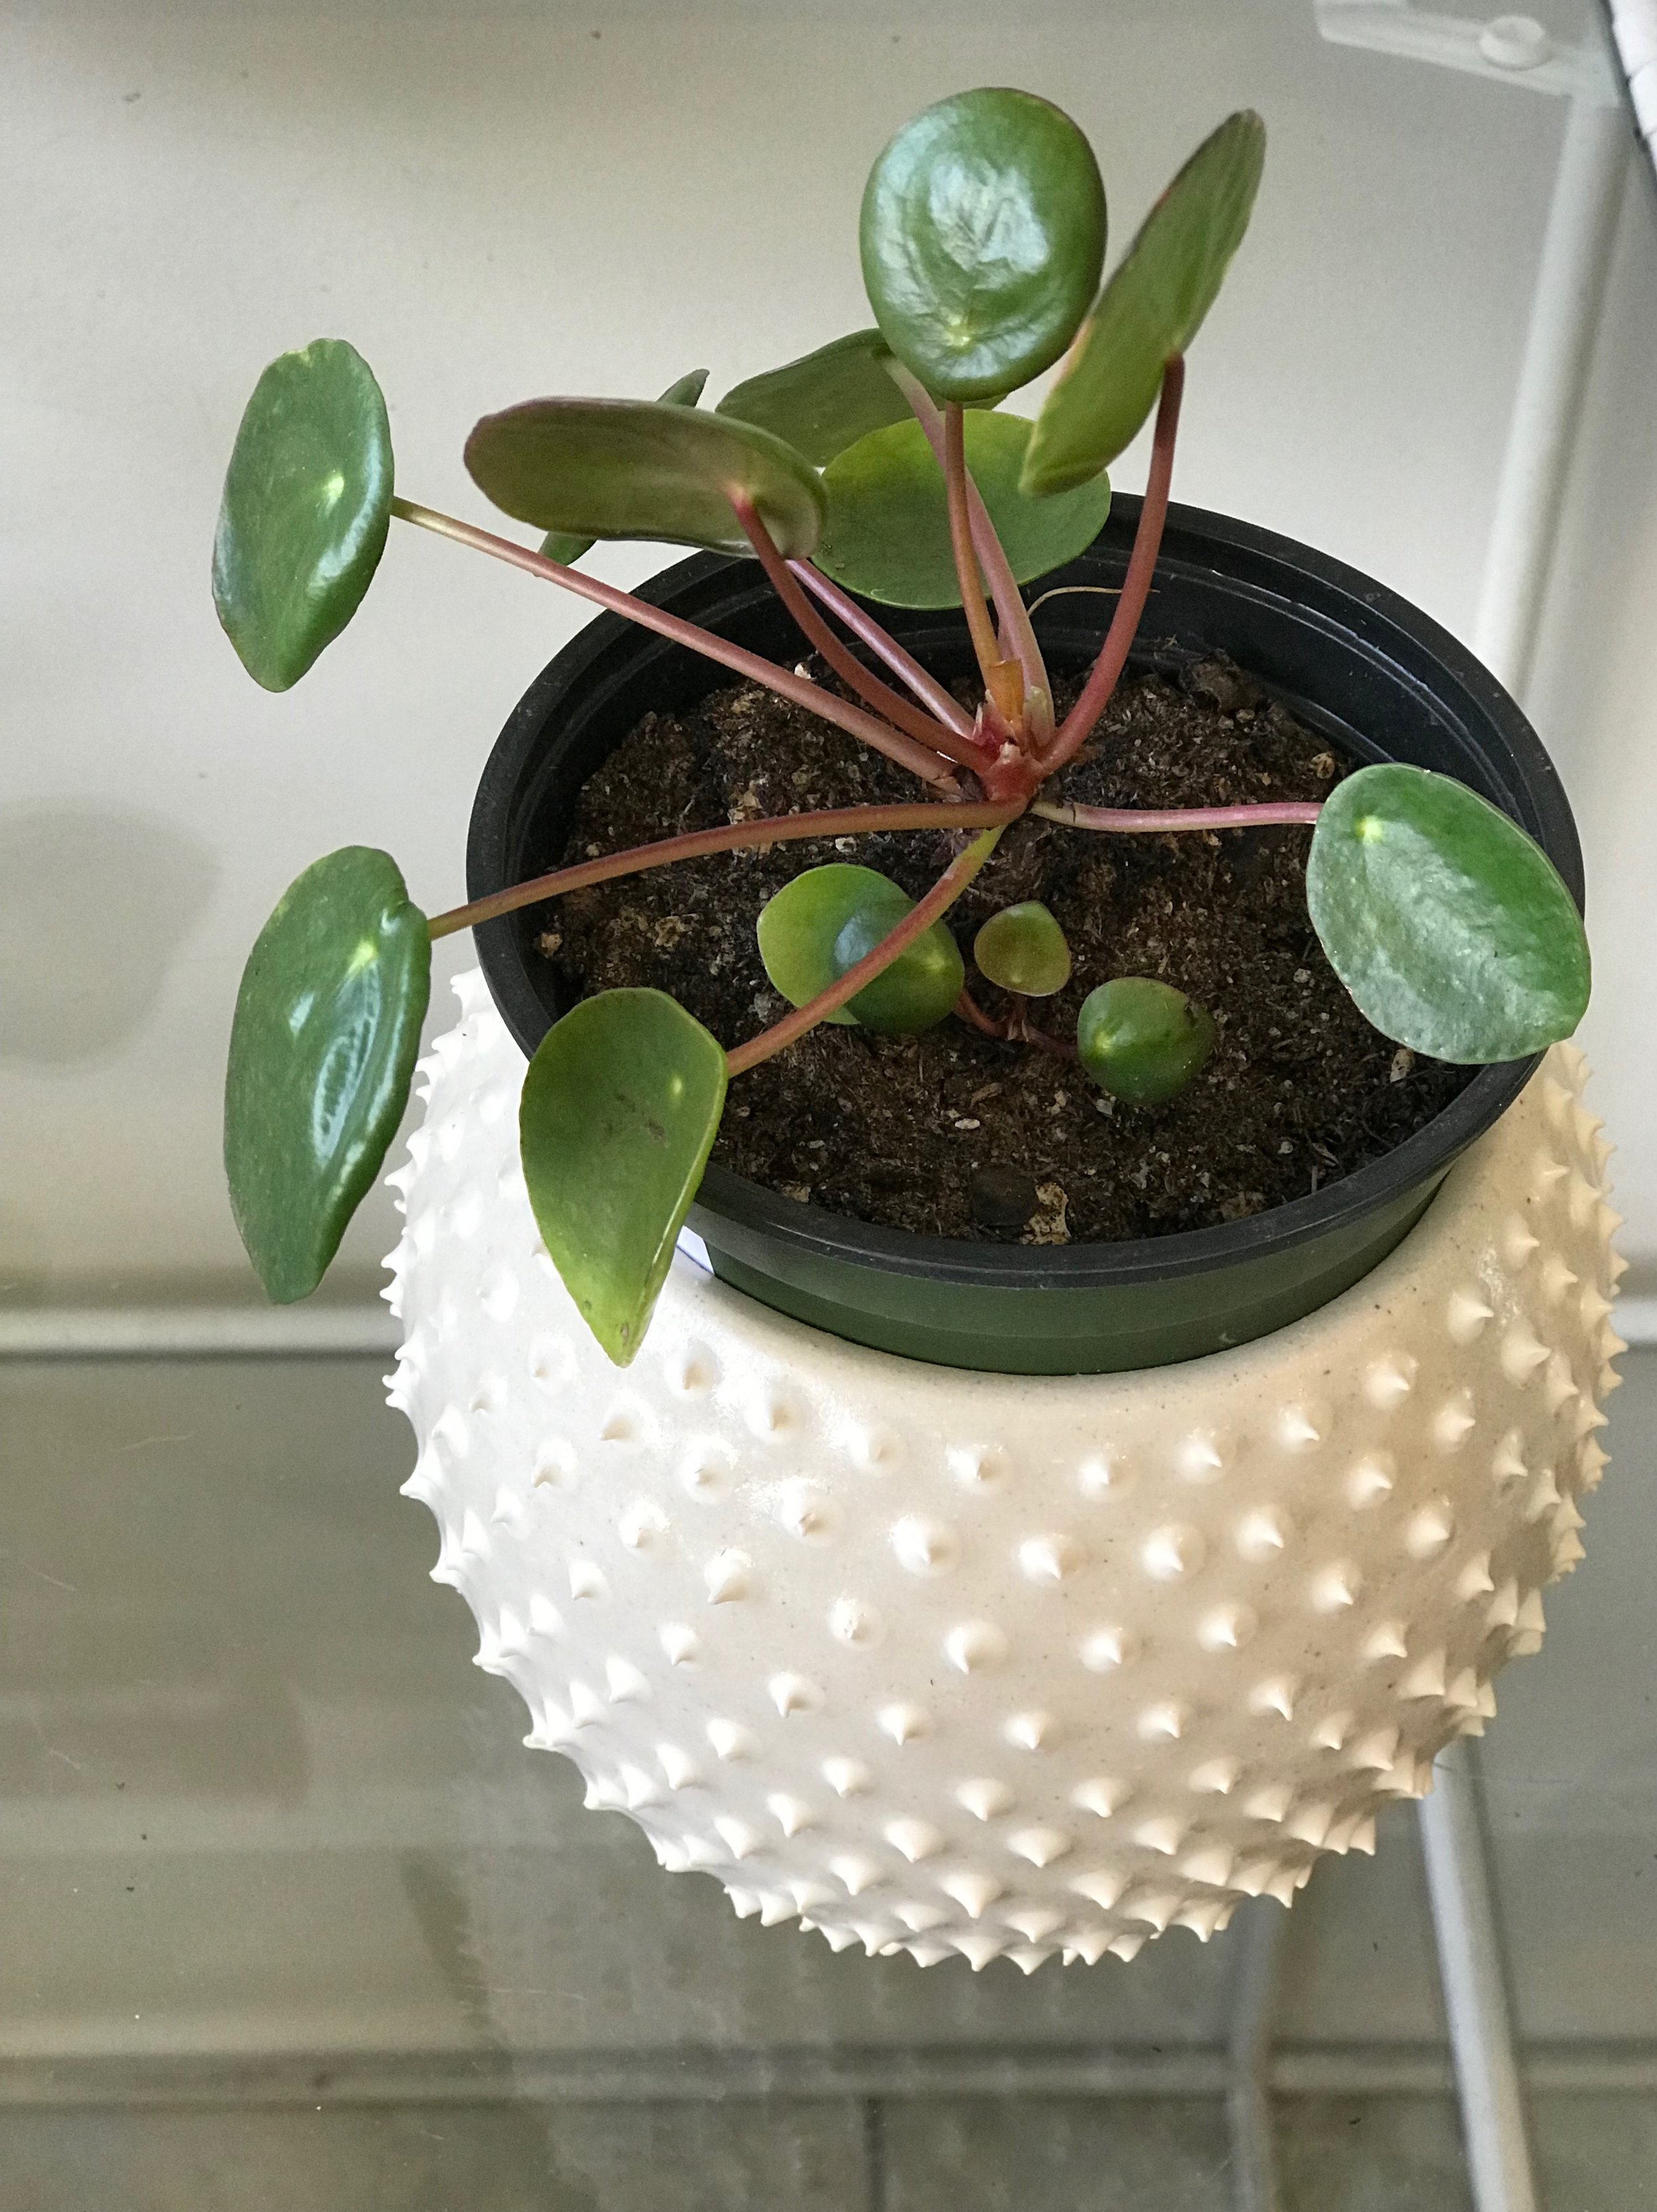 3. Pancake plant or Pilea peperomioides - Fun, bouncy and propagates new growth quickly. It's ready for a drink when it slowly goes limp.